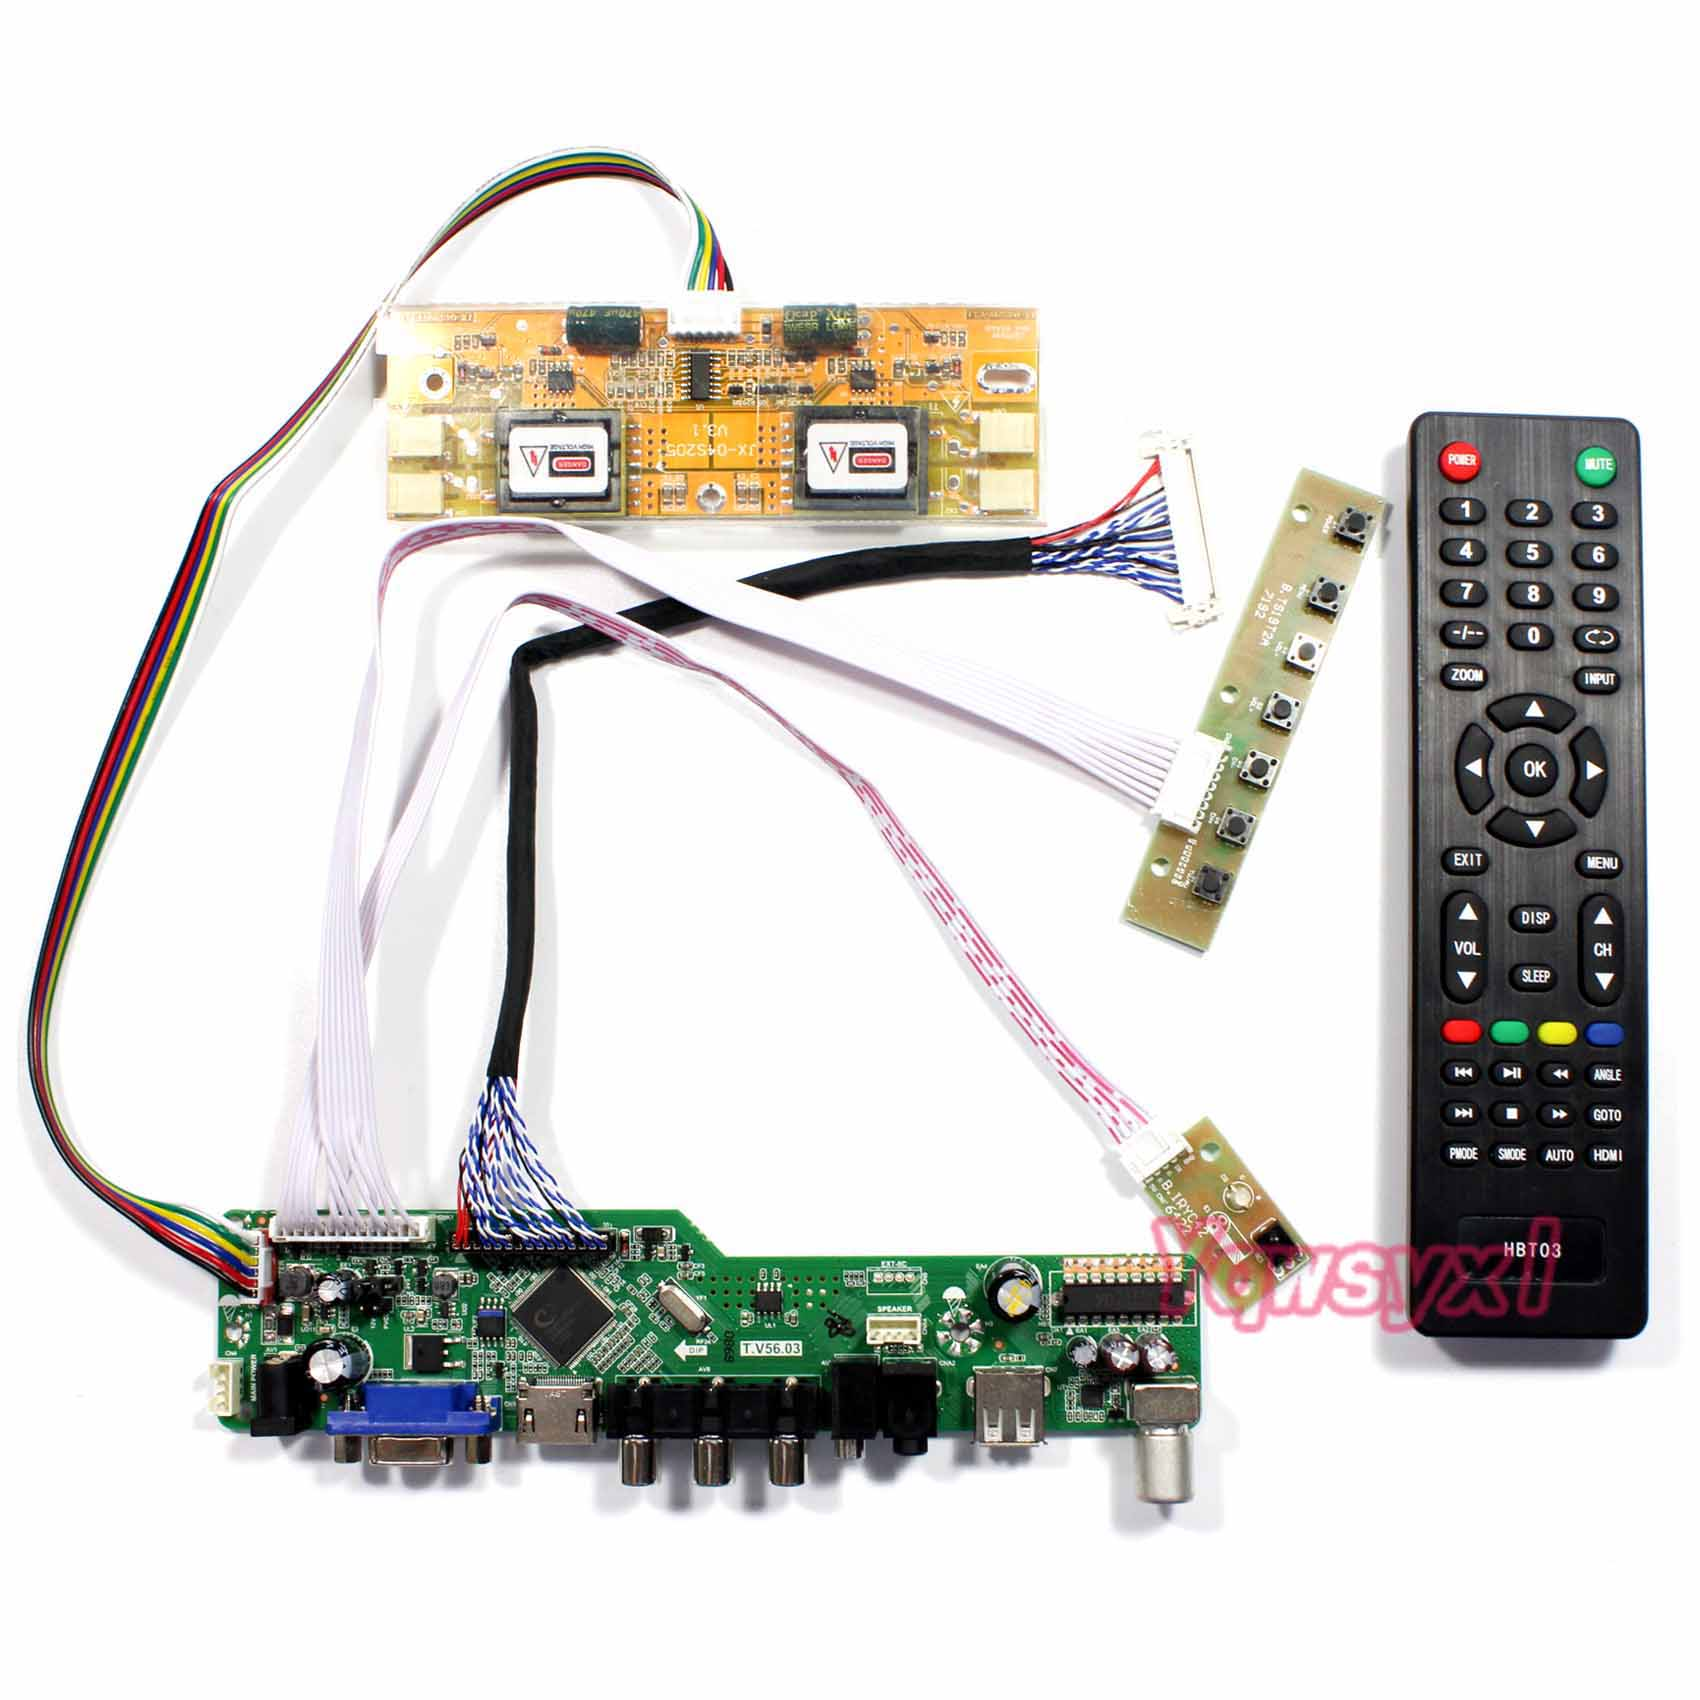 Yqwsyxl  Kit For  LTM190M2-L31 LTM190M2-L33  TV+HDMI+VGA+AV+USB LCD LED Screen Controller Driver Board